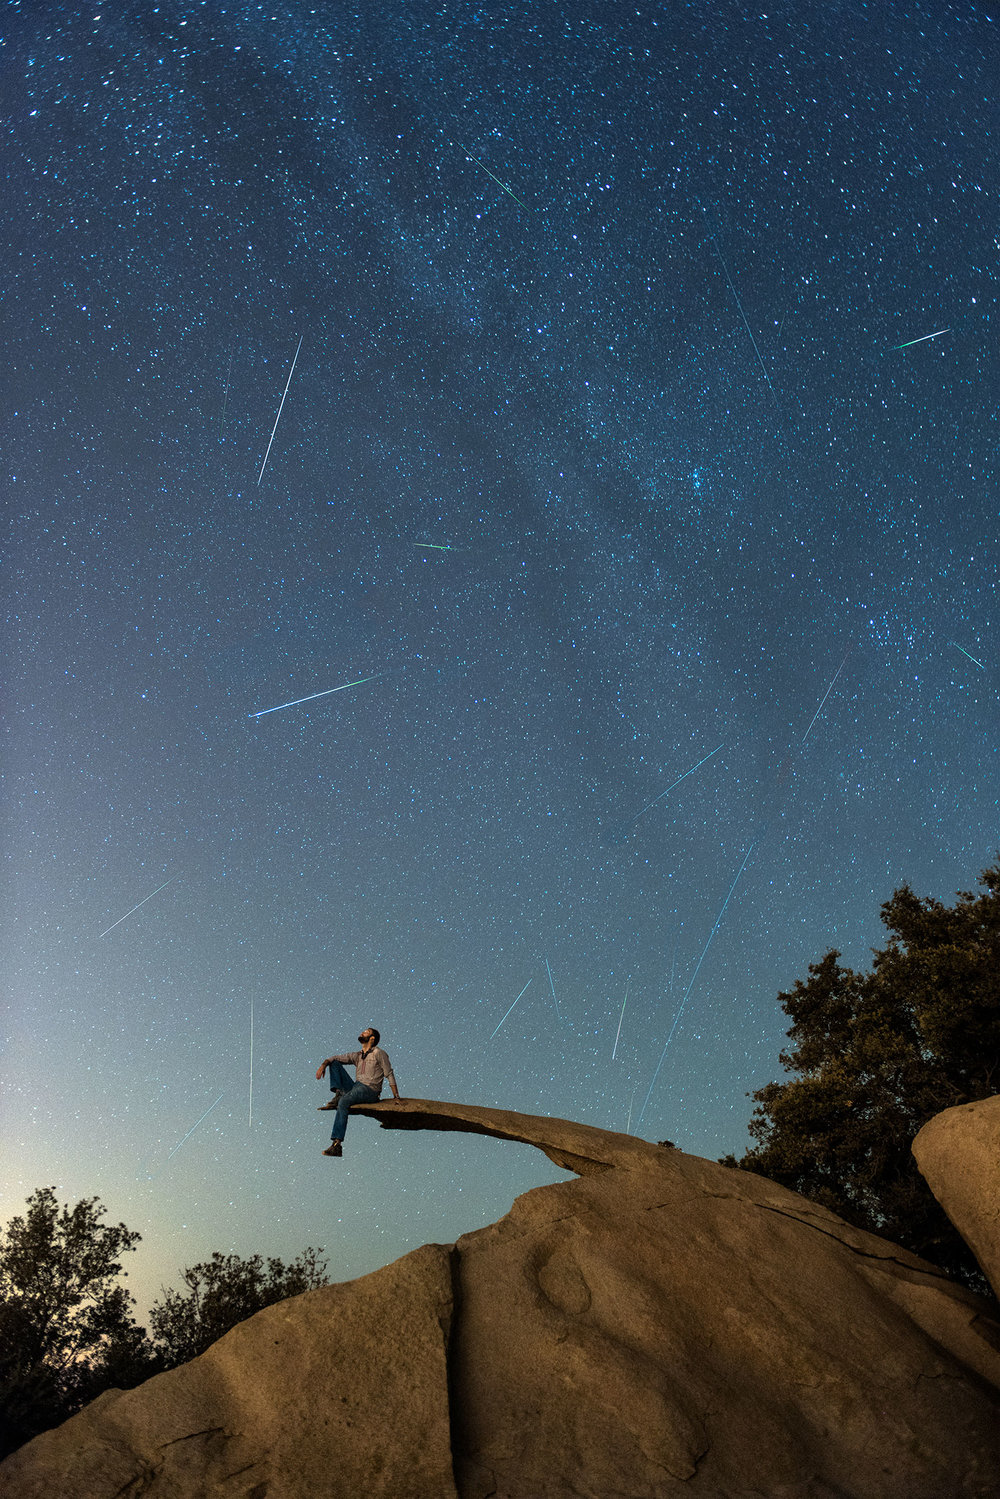 austin-trigg-southern-california-Perseids-meteor-shower-night-stars-Potato-Chip-rock-san-diego.jpg